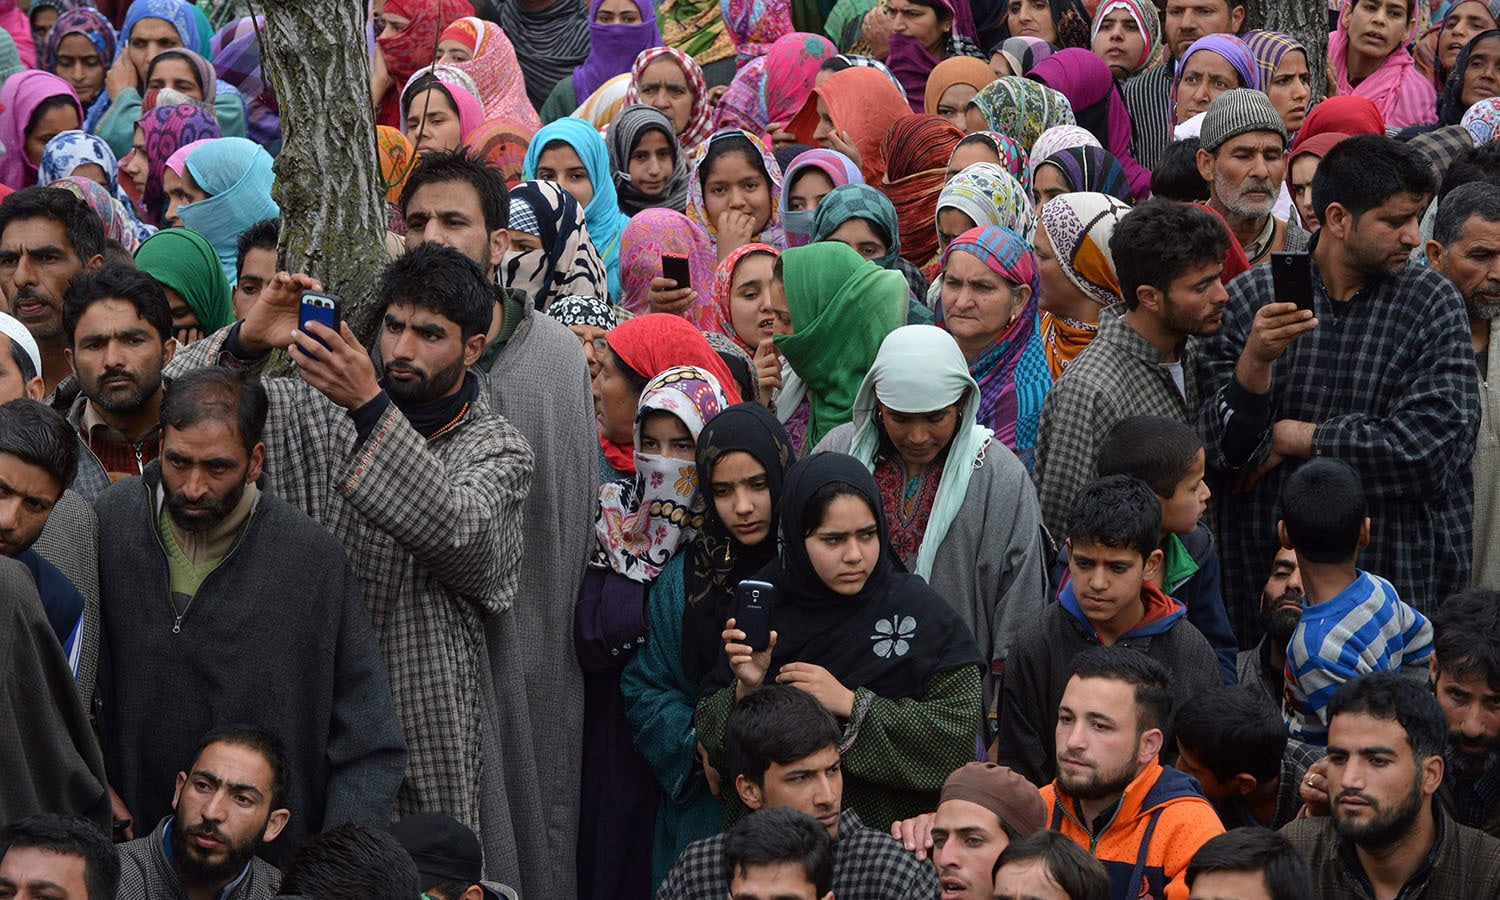 Kashmiri villagers gather during the funeral of freedom fighter Bilal Ahmed Bhat in the village of Karimabad in Pulwama district